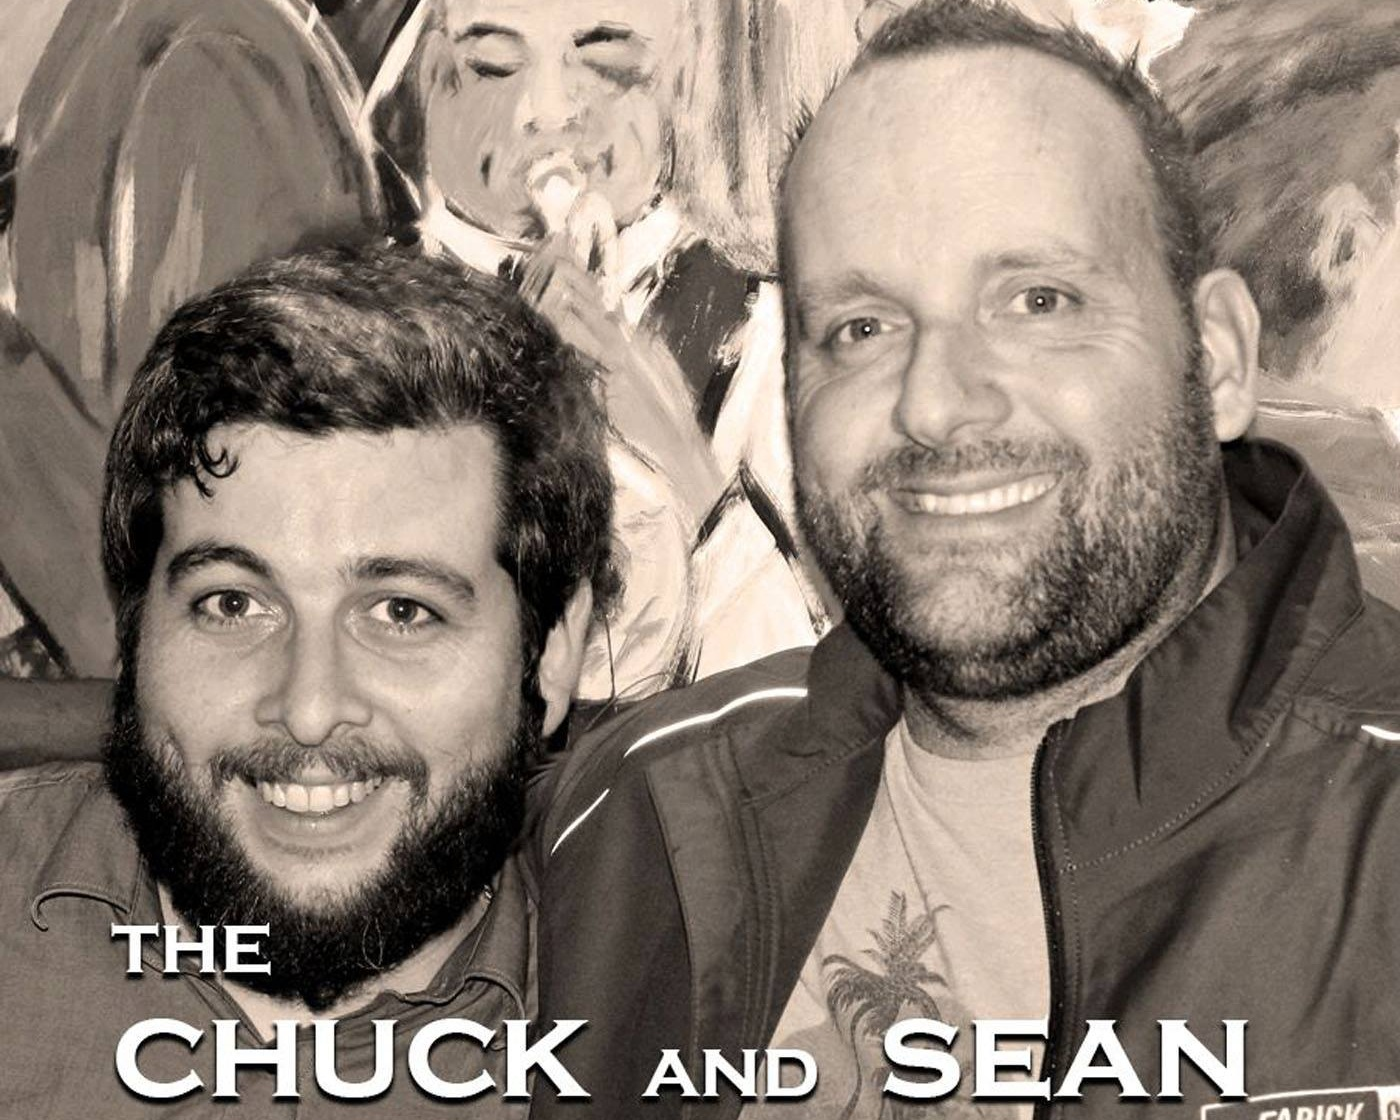 Chuck on the left and Sean on the right, but we're both Bones.